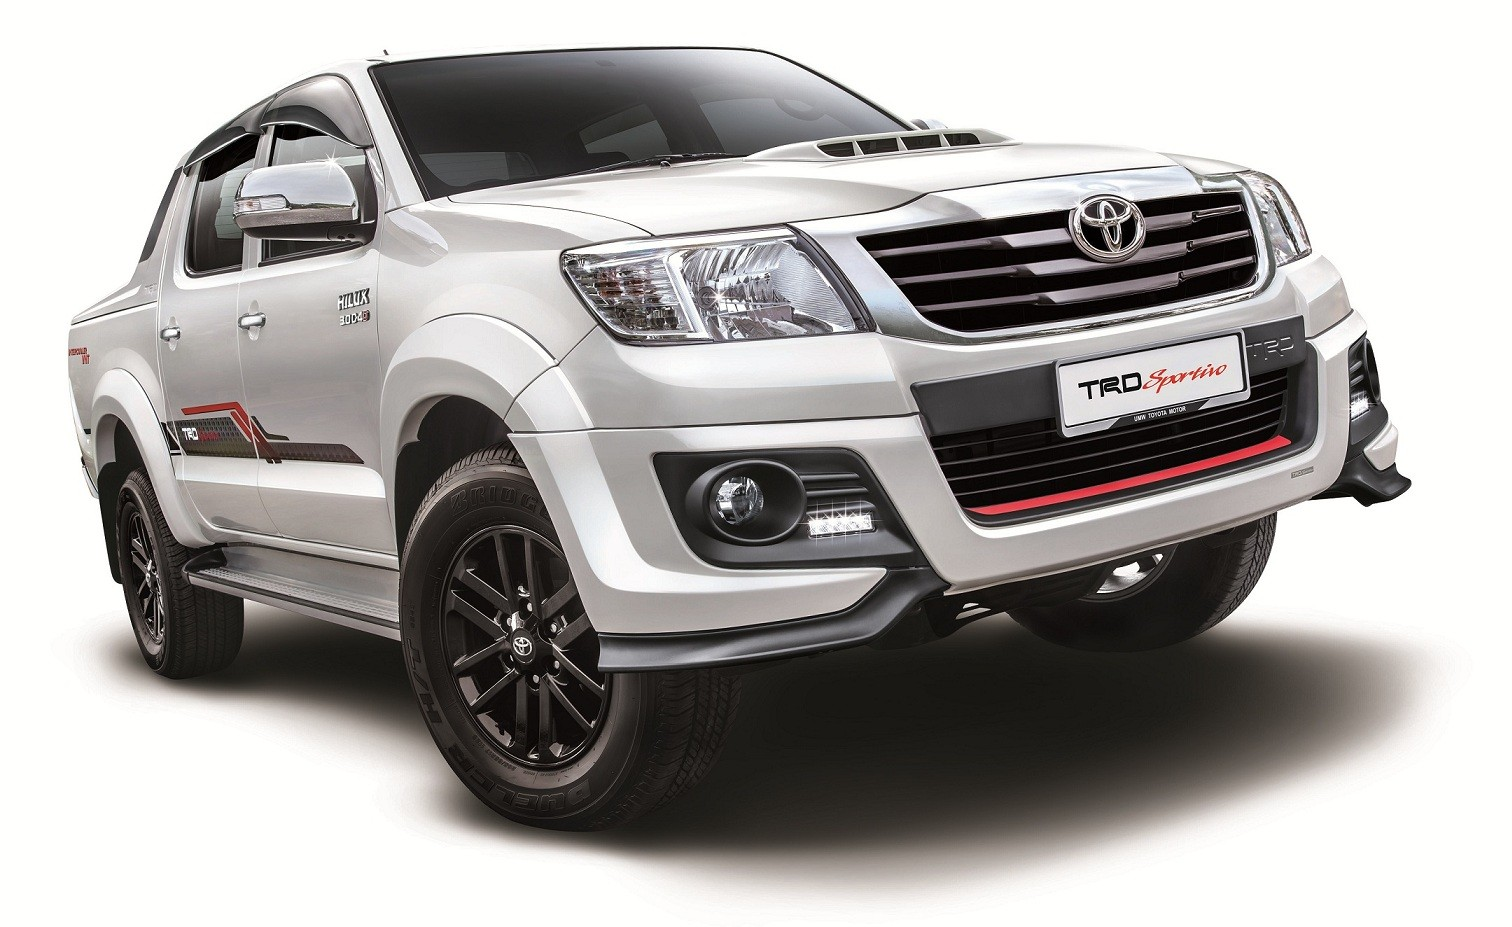 2015 toyota hilux updated new trd sportivo variant. Black Bedroom Furniture Sets. Home Design Ideas